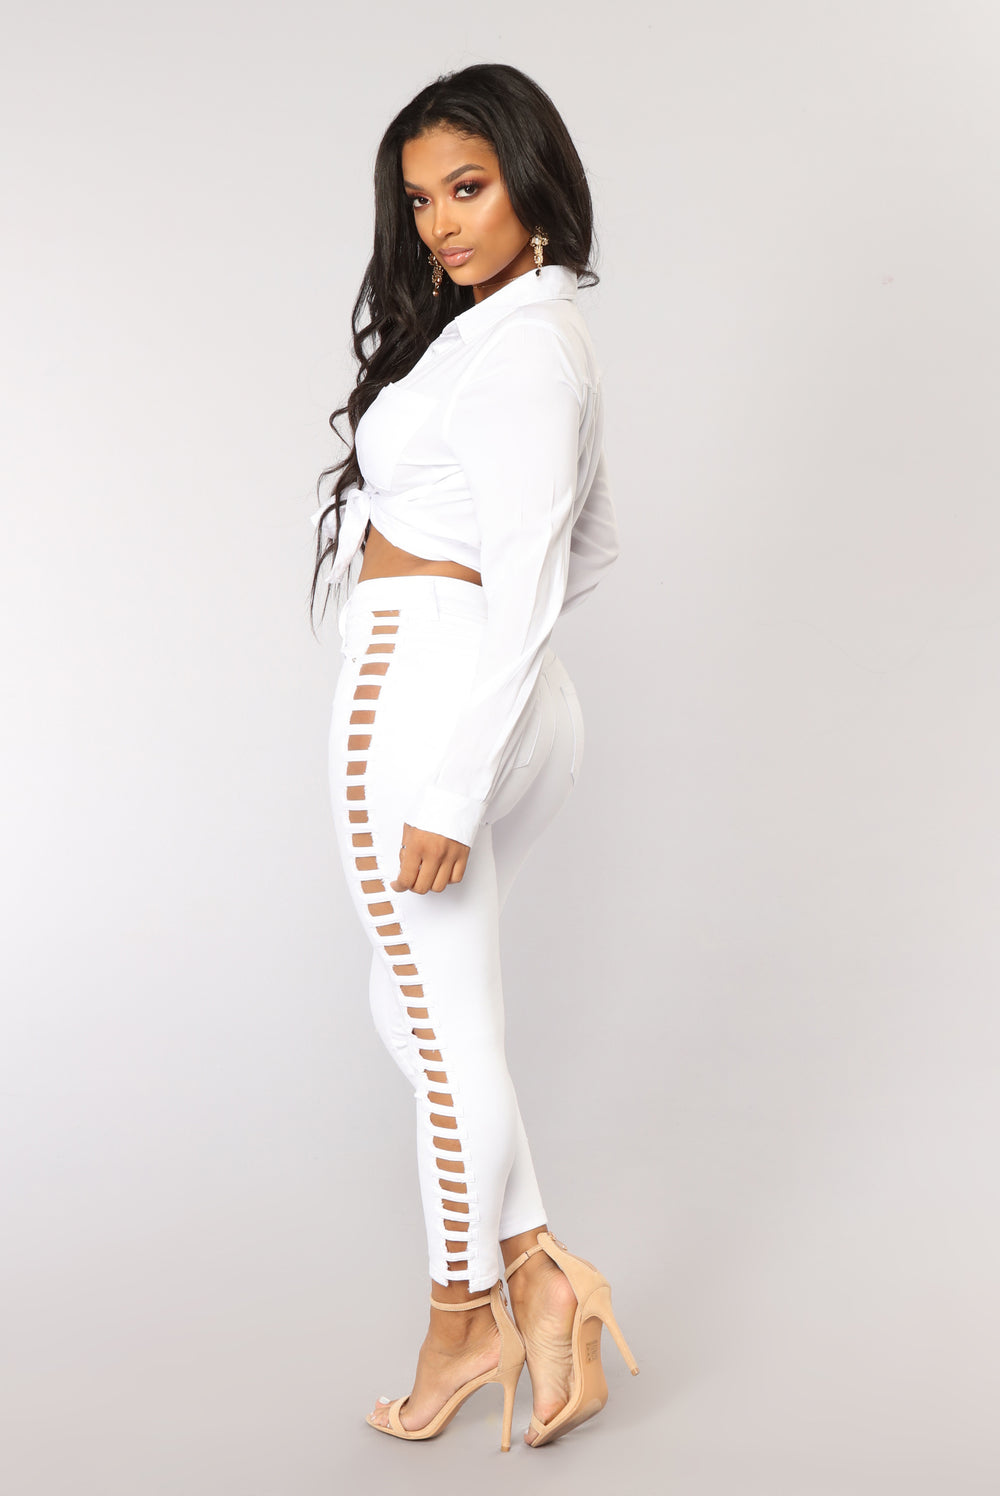 Cut It Out Jeans Ankle Jeans - White